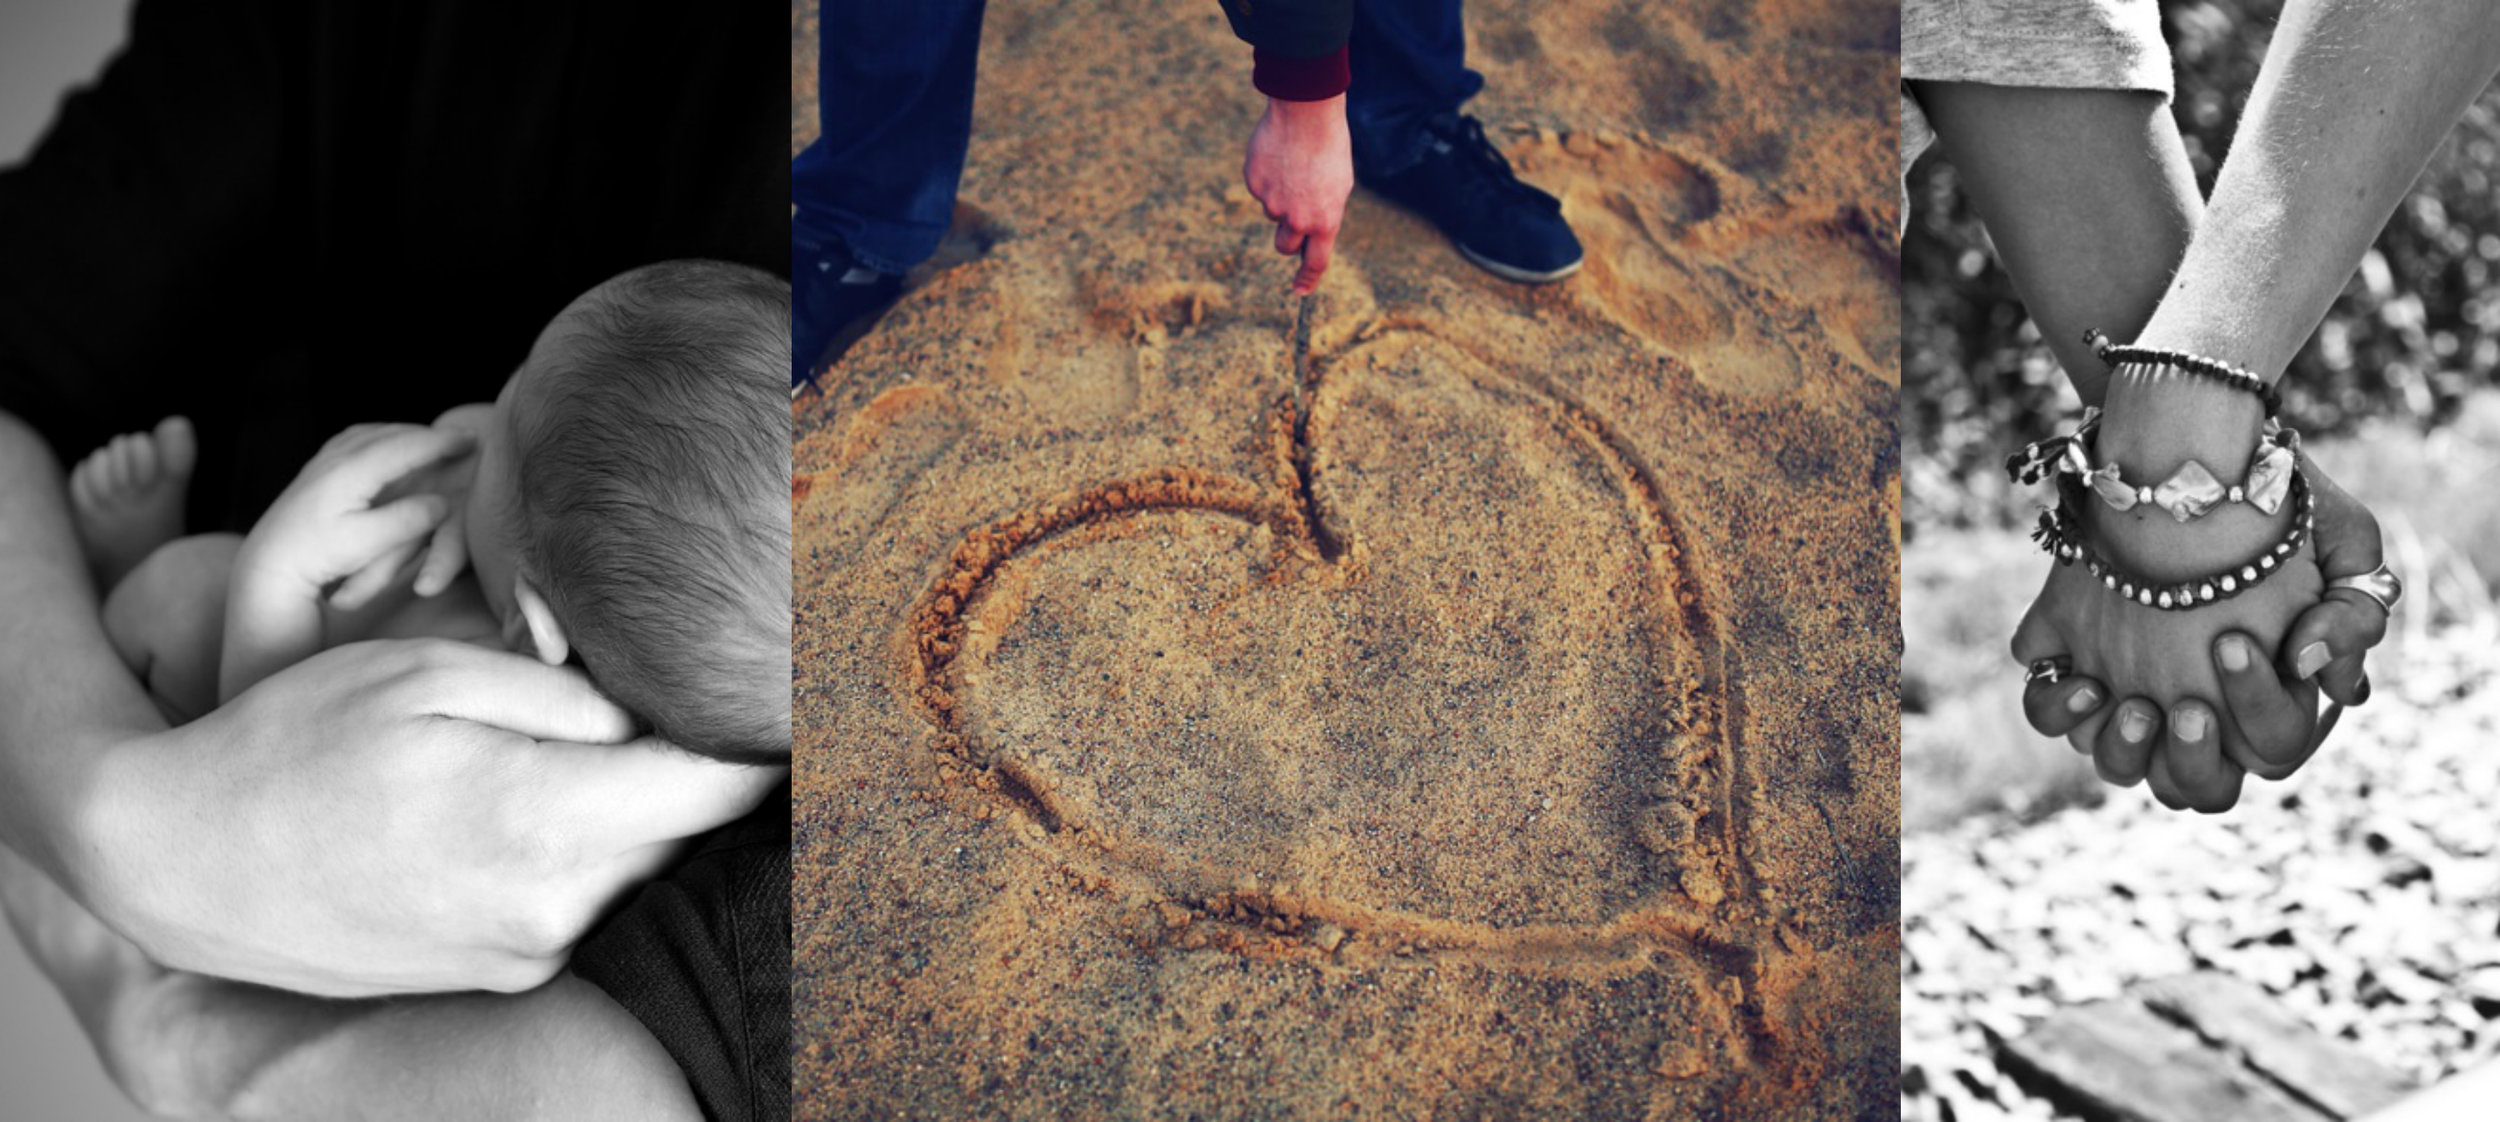 Naming Ceremonies, A heart in the sand and a couple holding hands